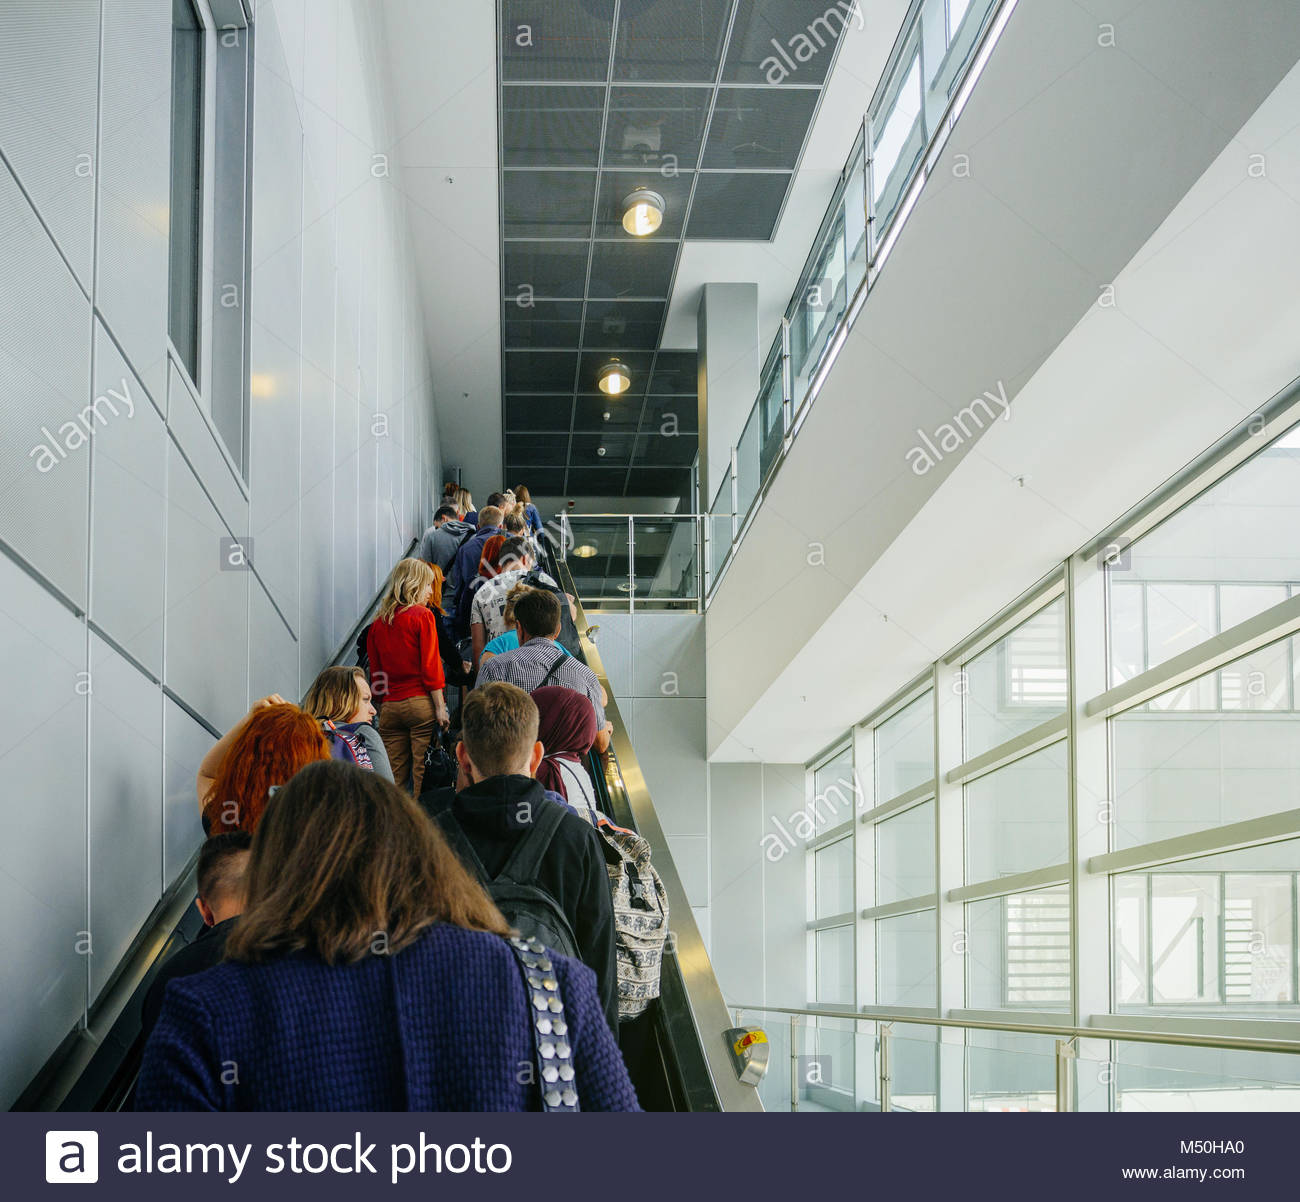 Passengers commuting on the escalator in modern airport terminal - Stock Image